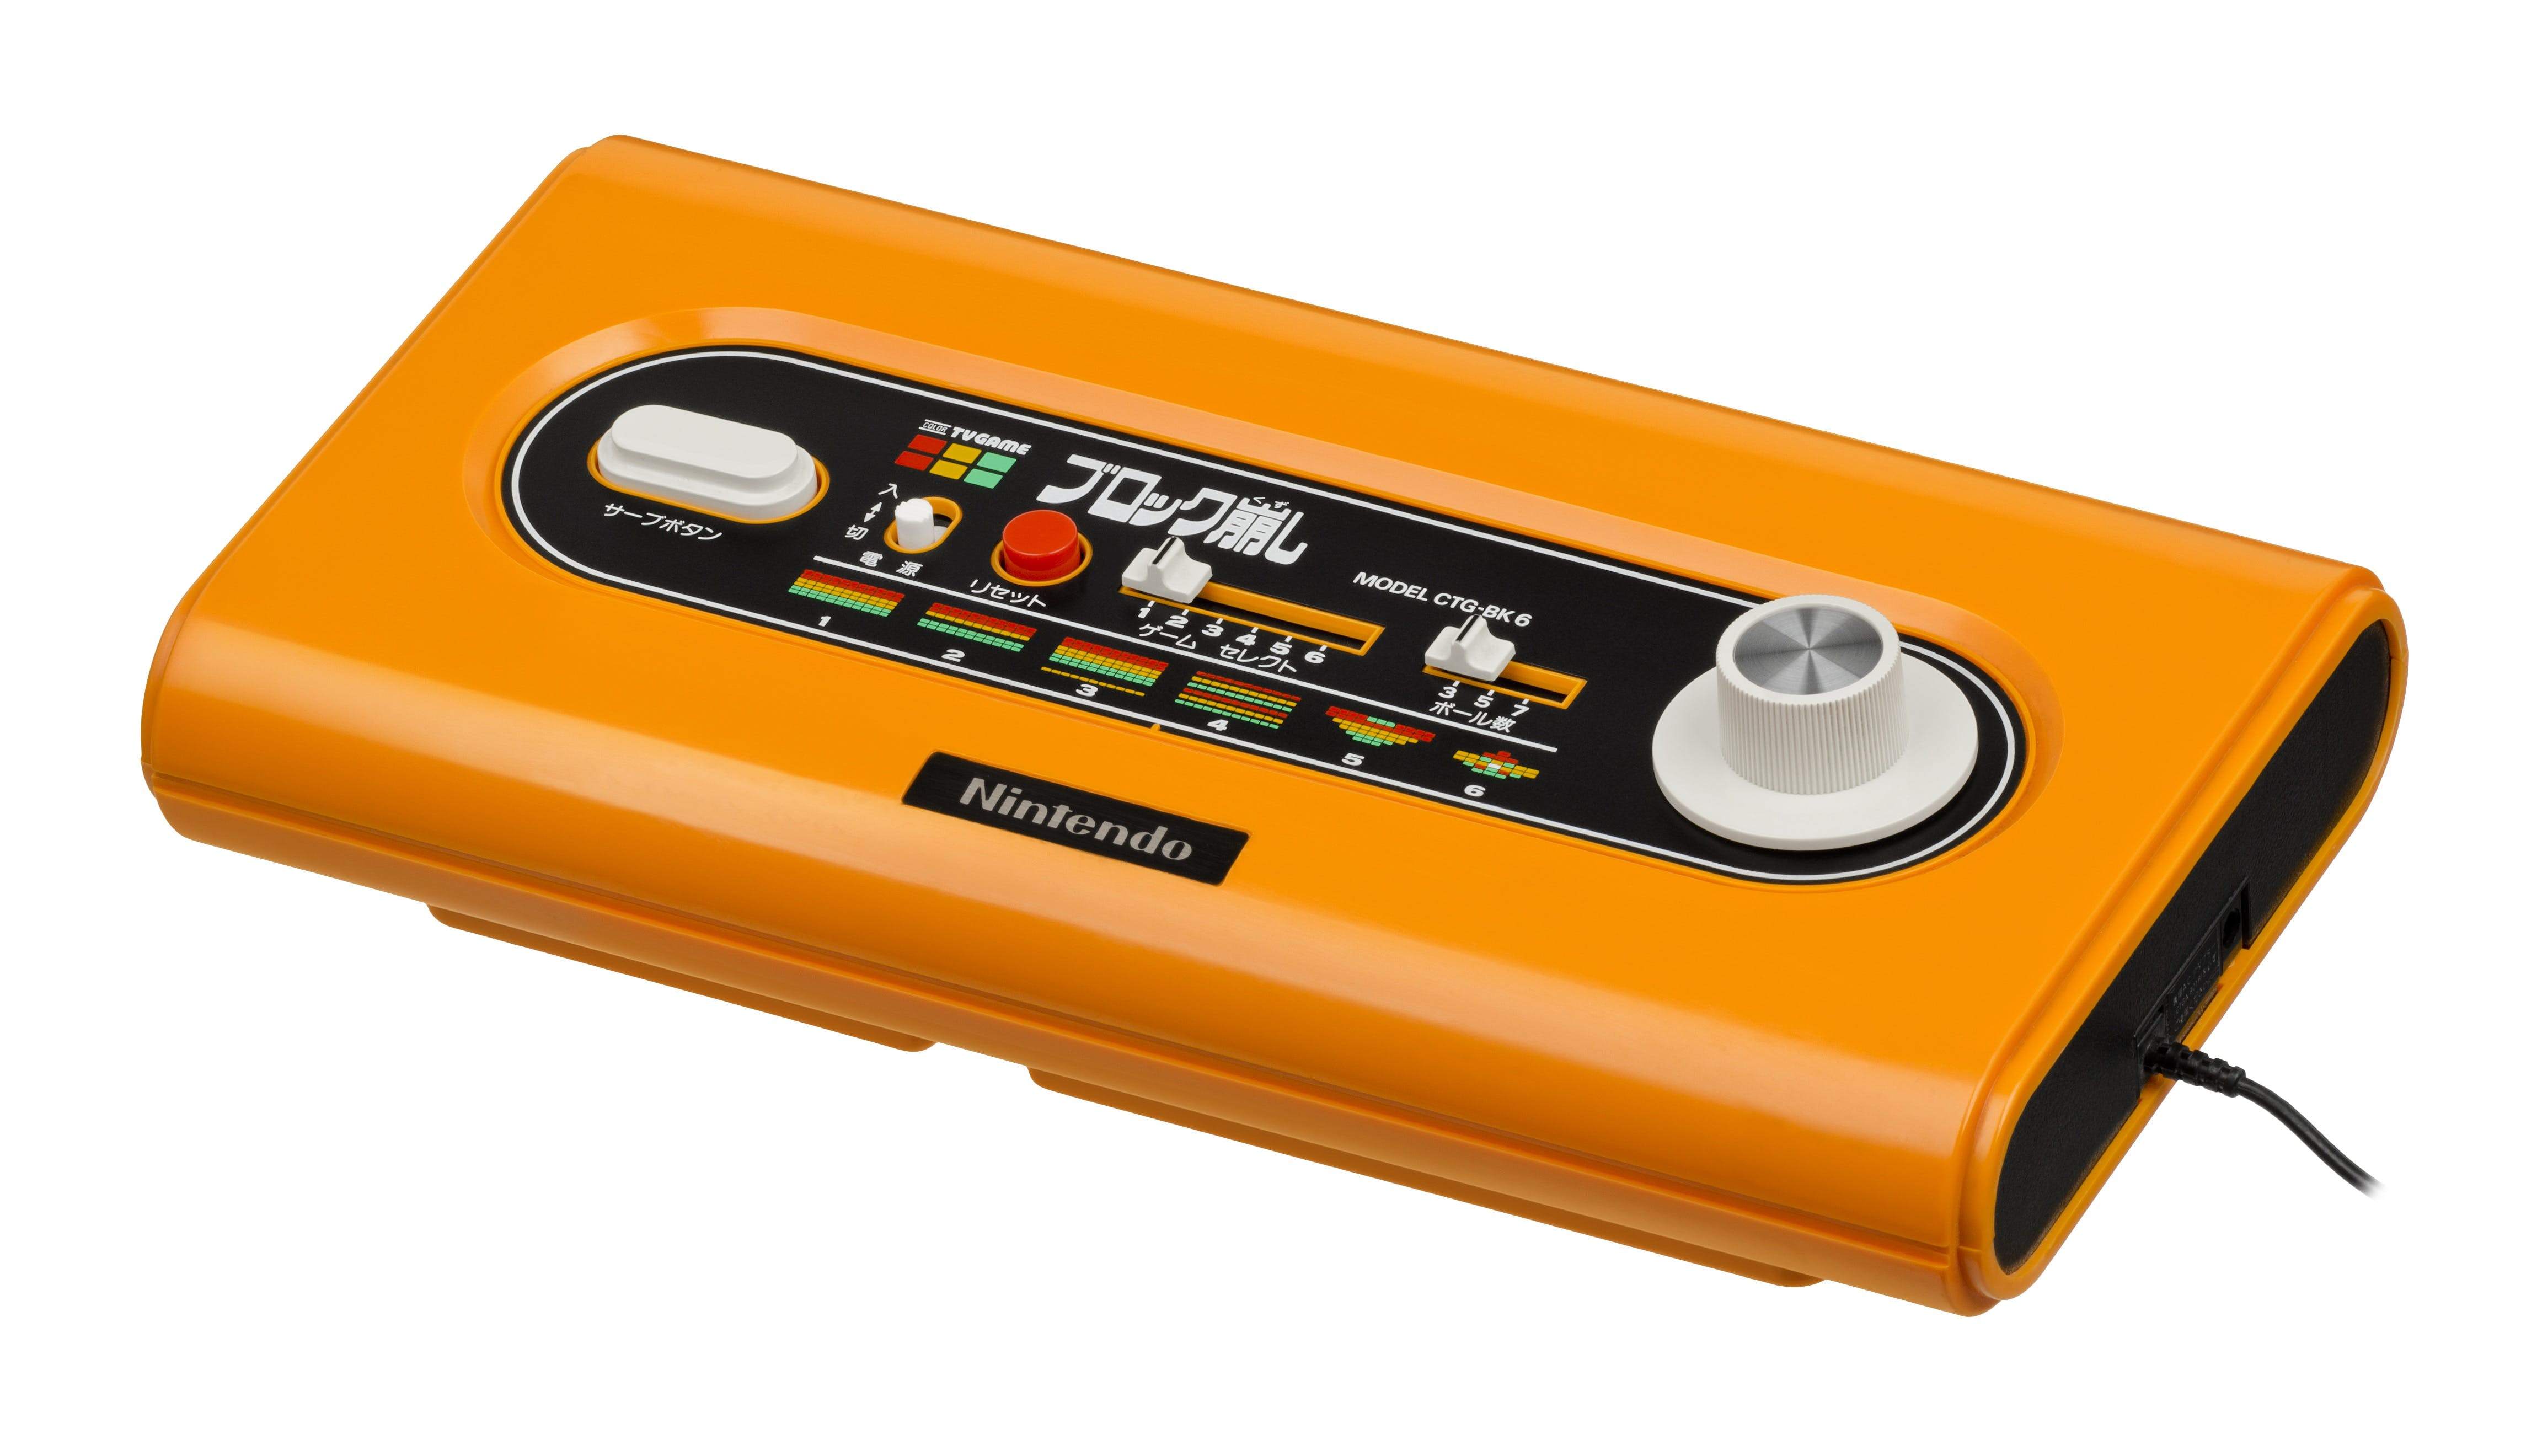 Orange and Black Nintendo Game Console